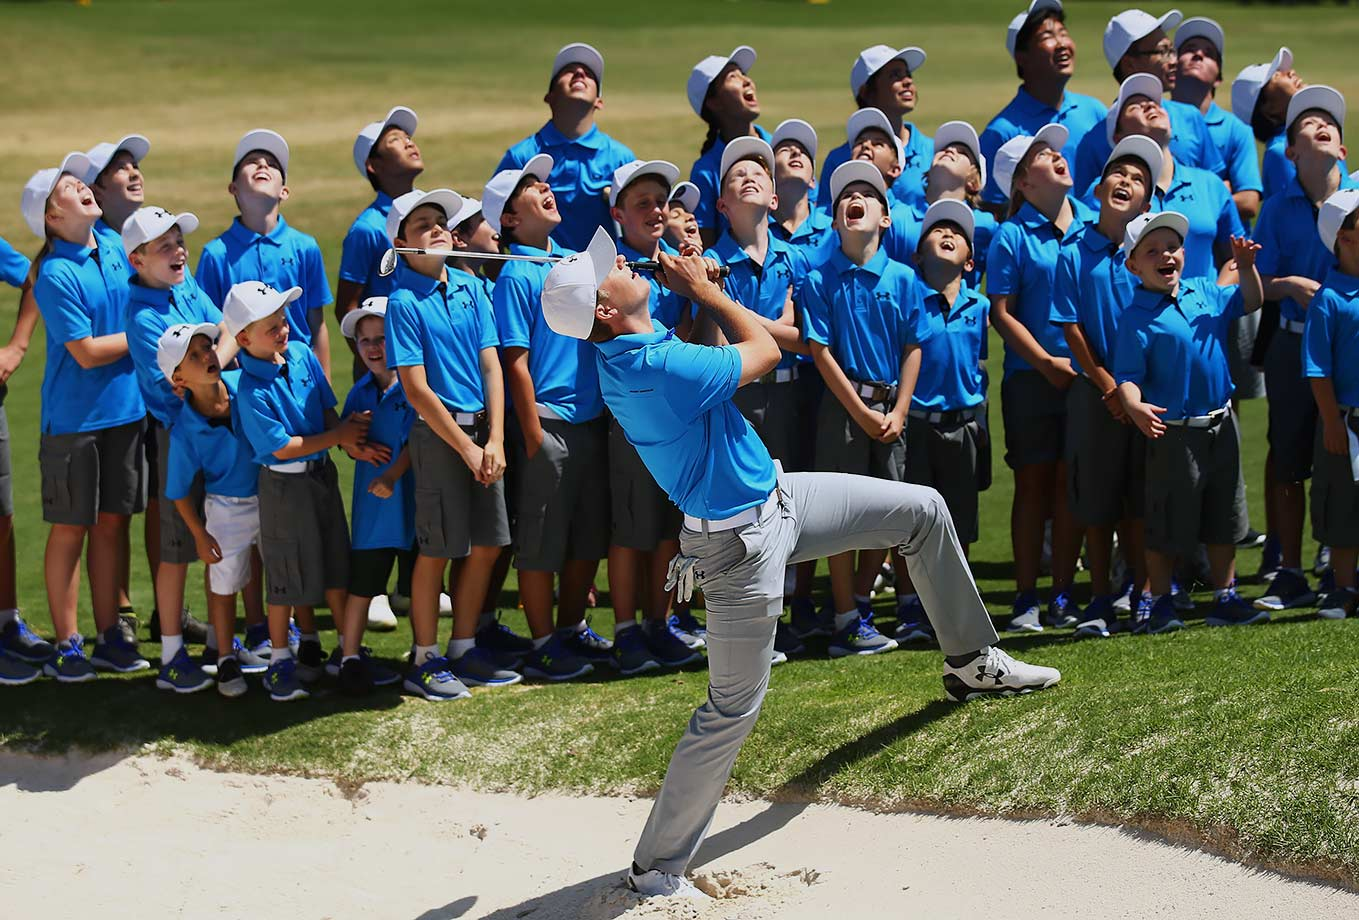 Based on where Jordan Spieth and the junior Australian golfers are looking at Spieth's bunker shot, they should probably all be running out of the way.